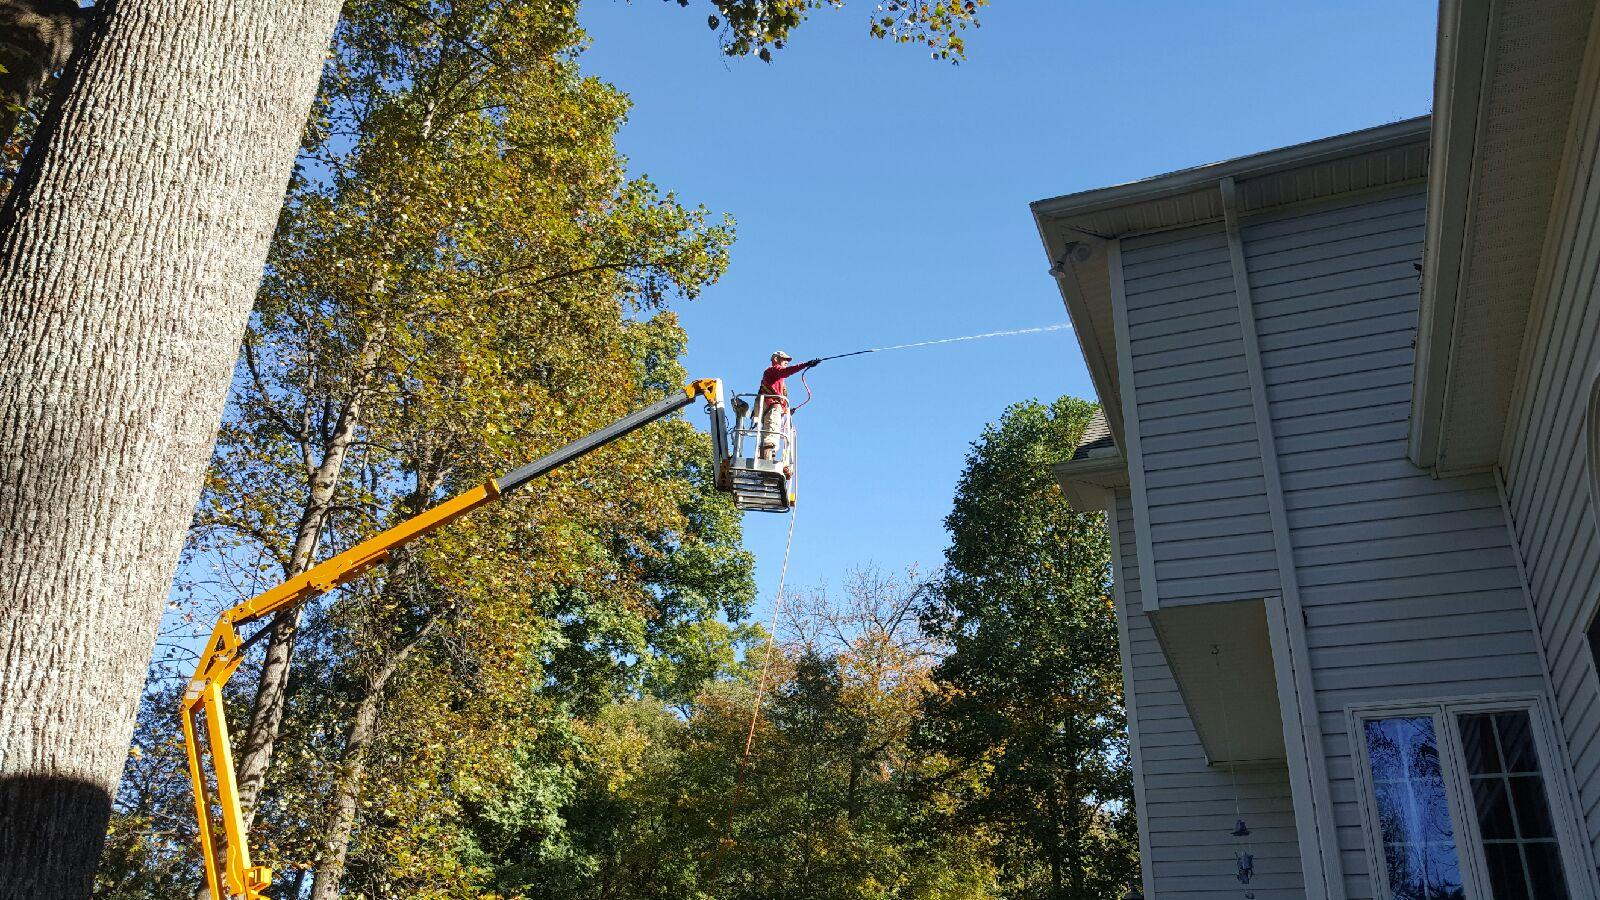 Boom Lift | Sidewalk Cleaning Company in Martinsburg WV